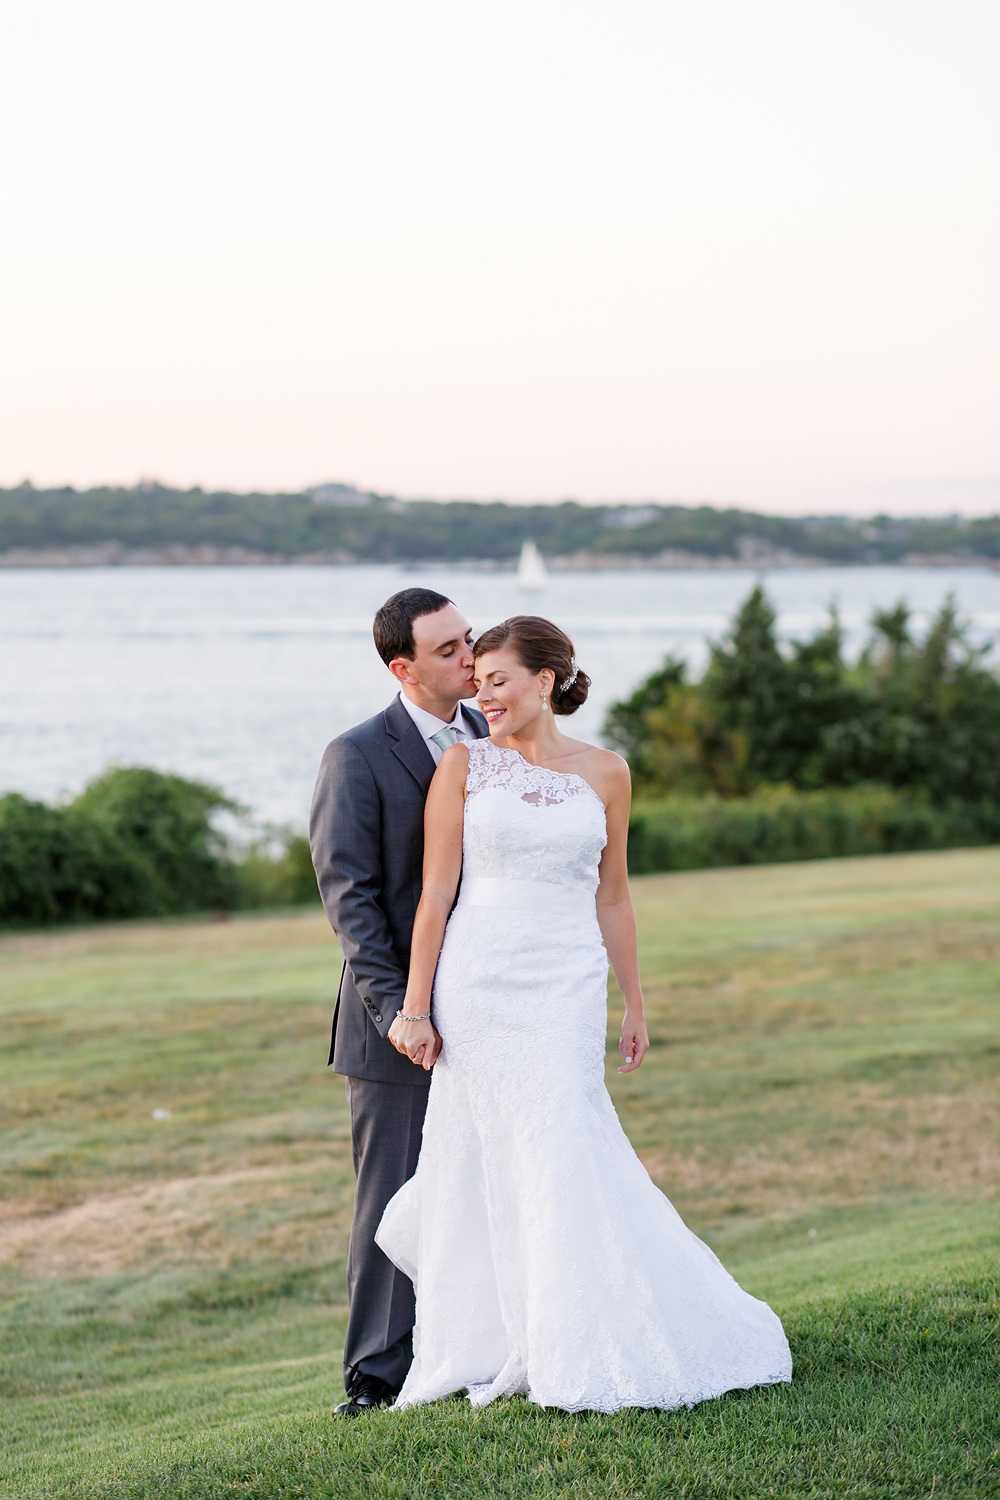 Wedding-Photographers-In-Newport-RI-14.JPG